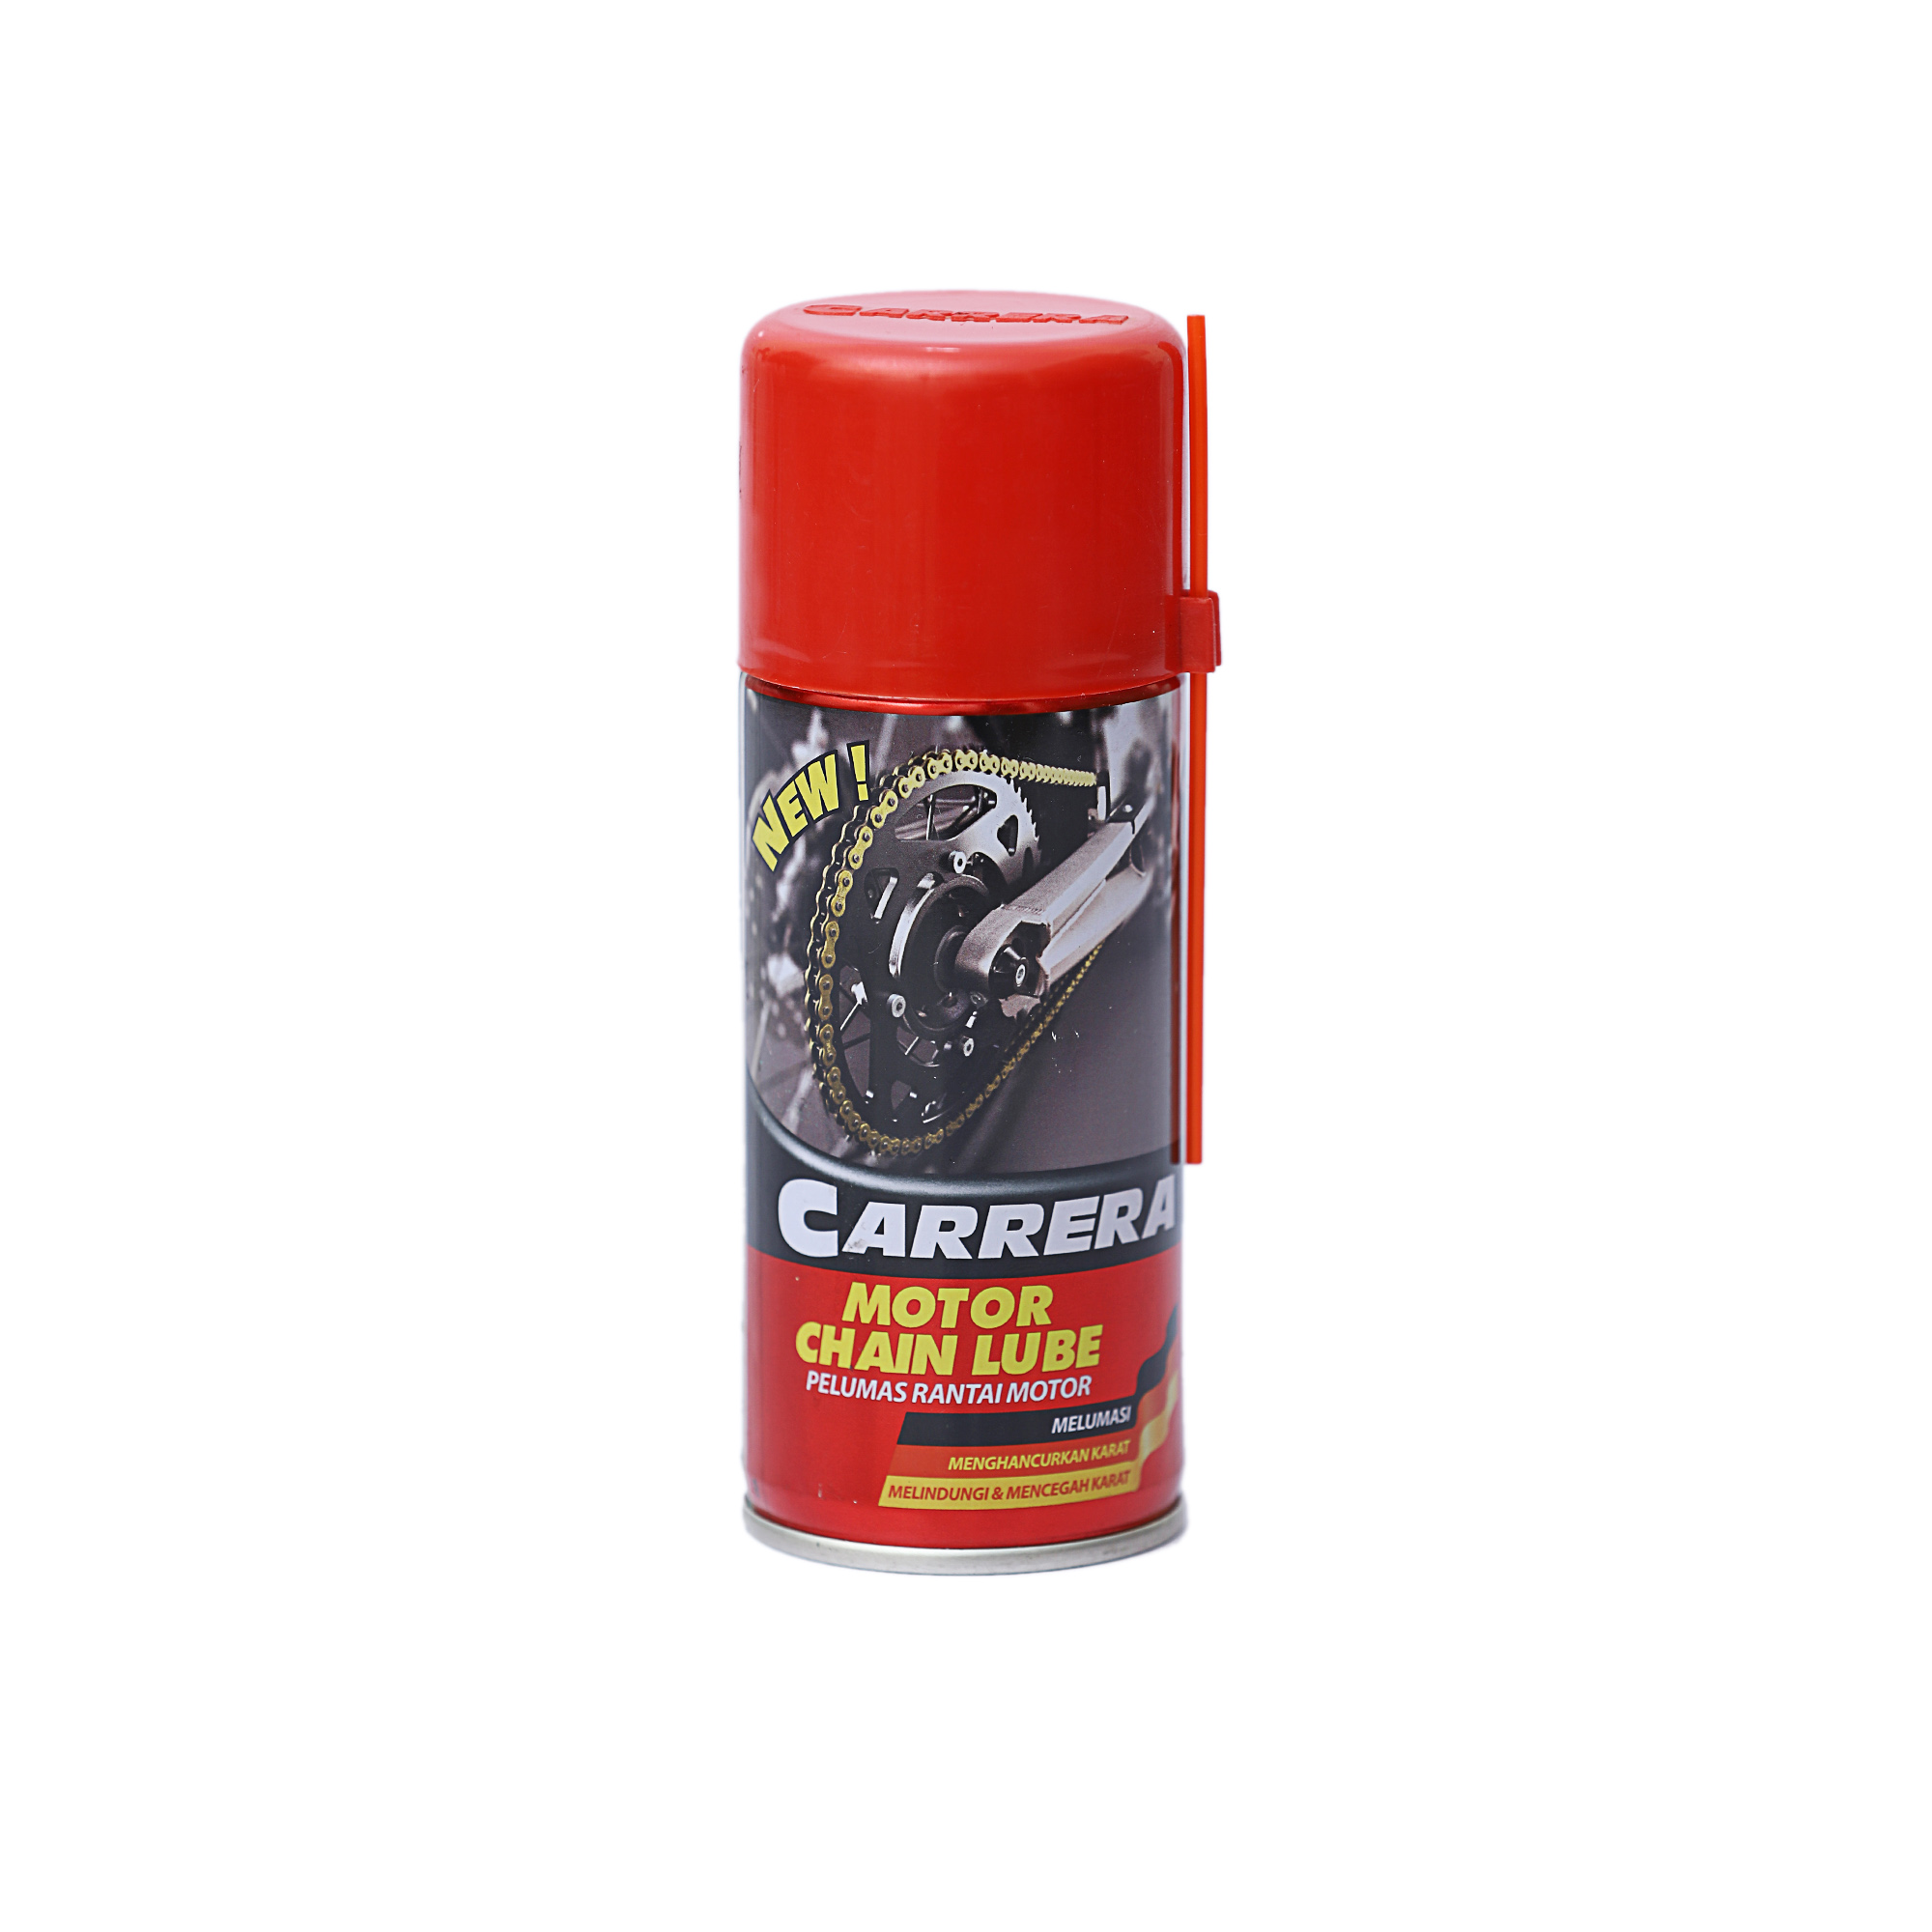 Carrera Motorcycle Chain Lube – Lubricate, Protect and Prevent Rust – Bike Lubrication Spray, 110 ml